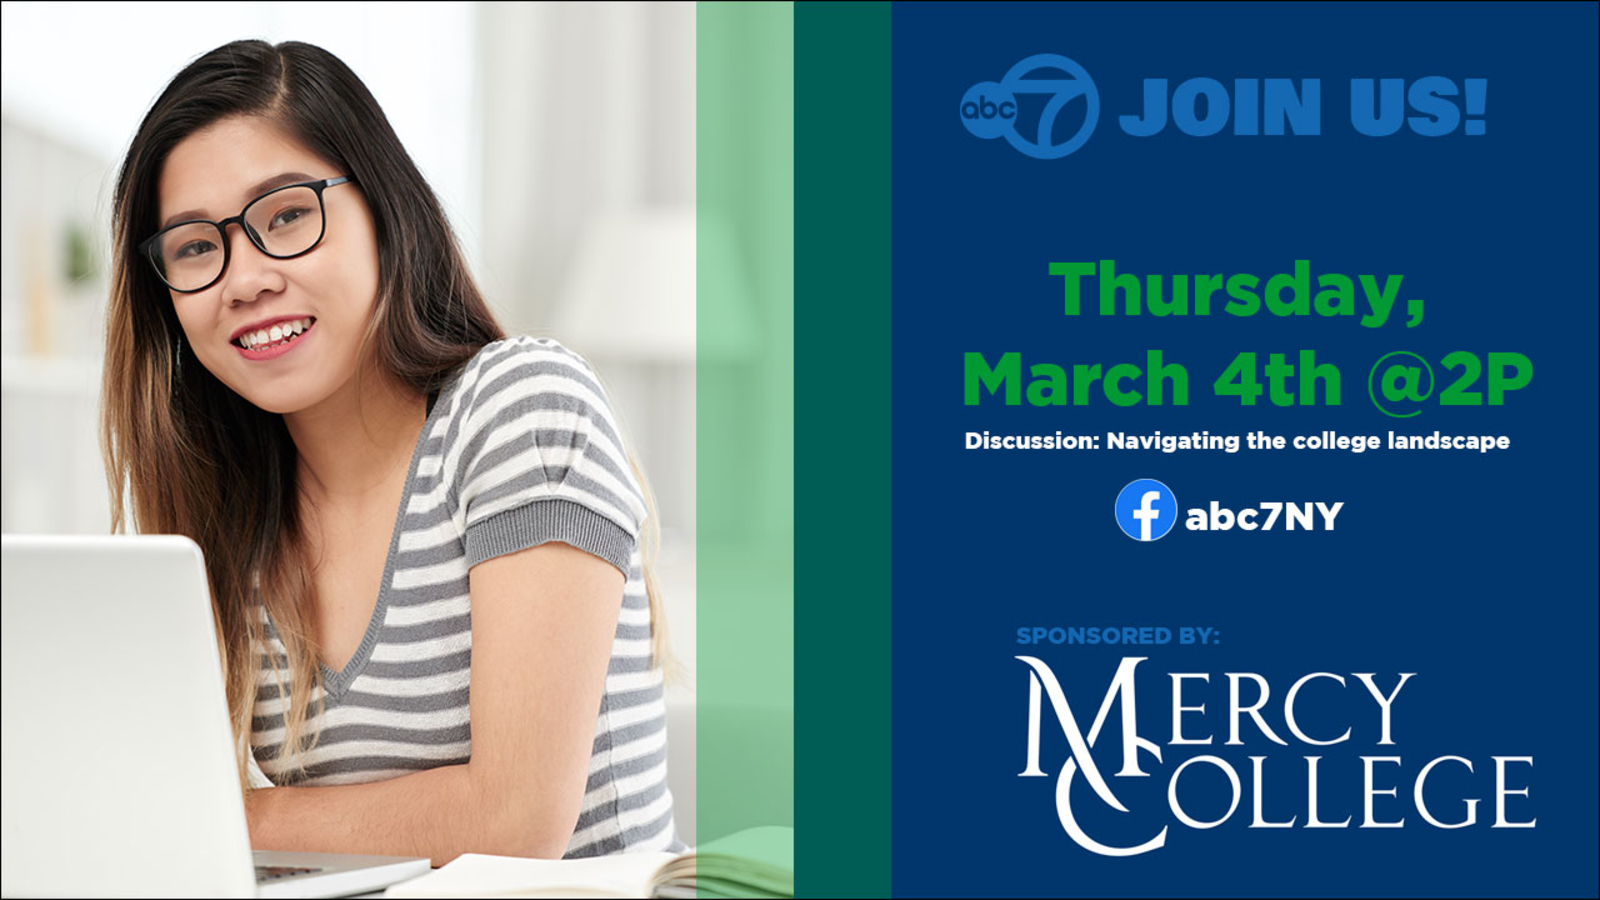 Watch this Facebook Live Event: MERCY COLLEGE – College to Career, Thursday at 2:00pm